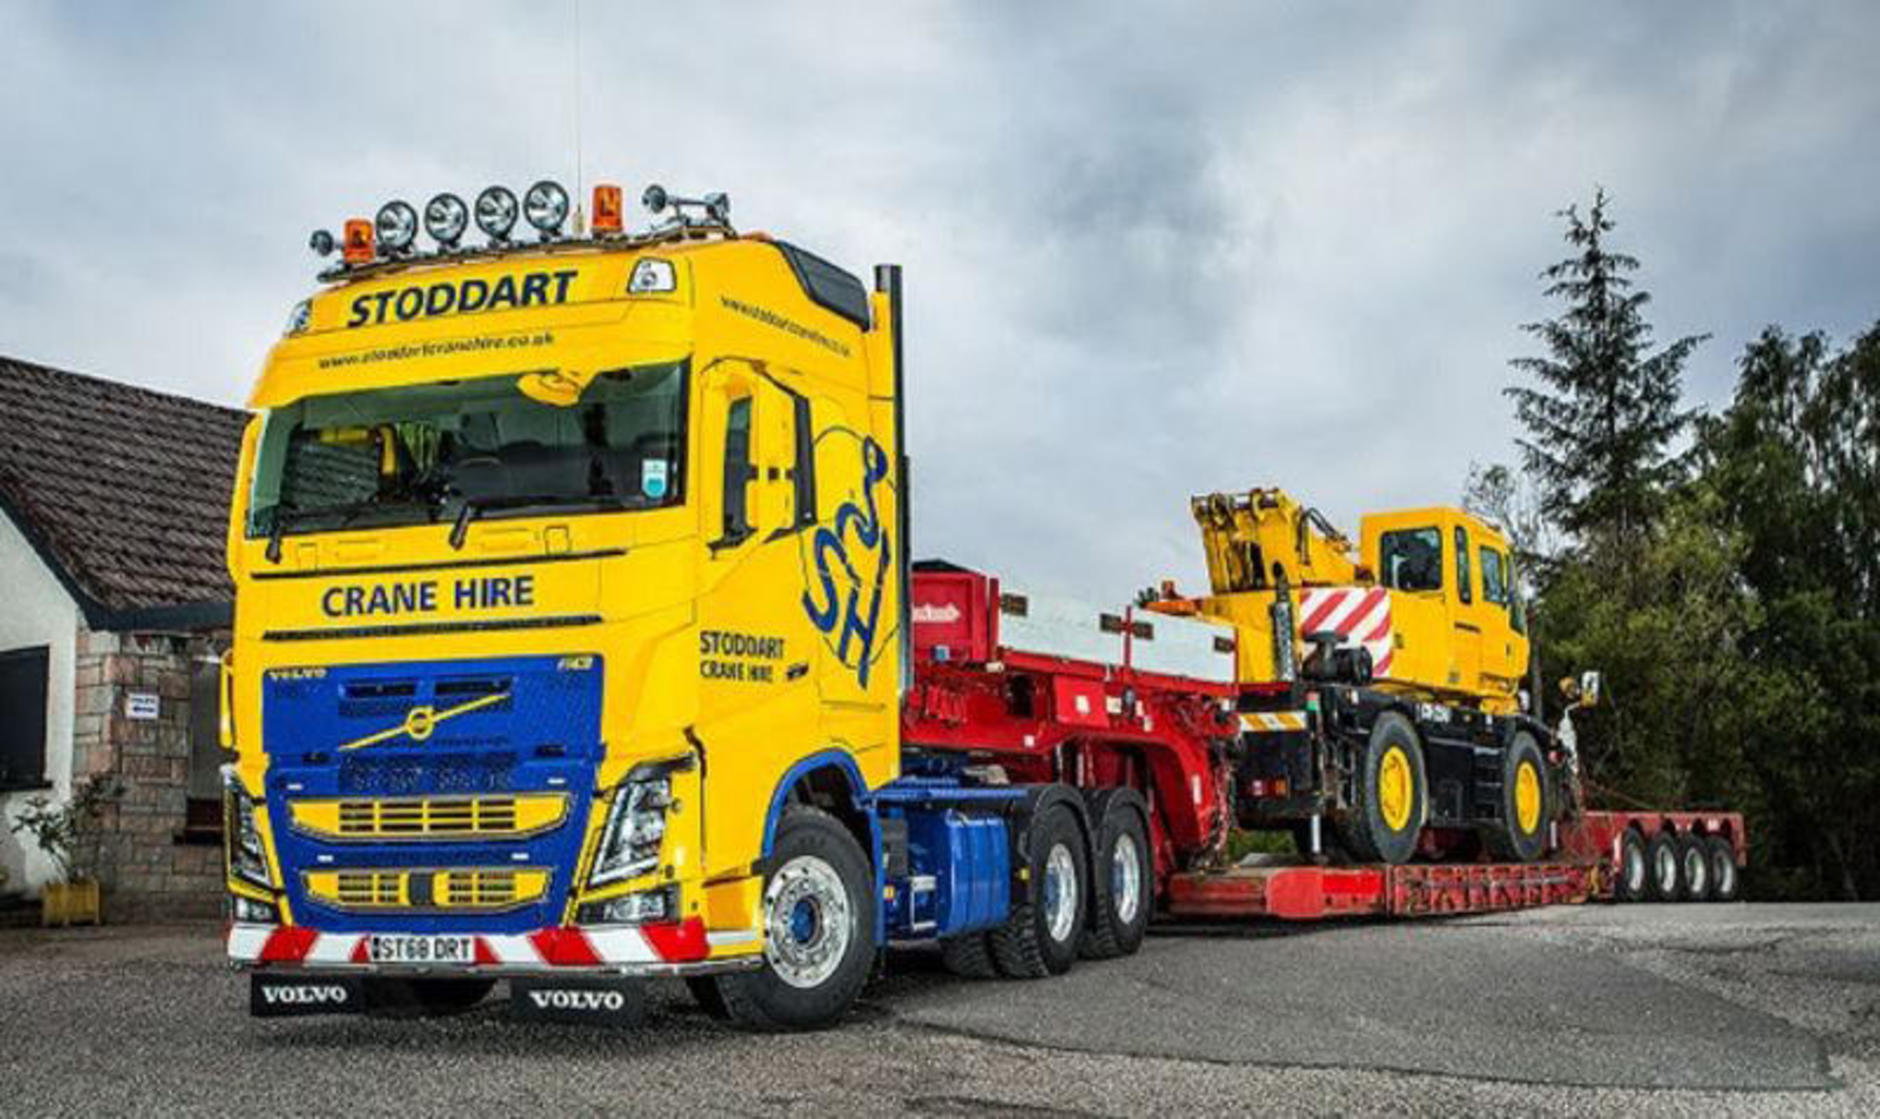 Used Trucks For Sale & Road Transport News | Commercial Motor